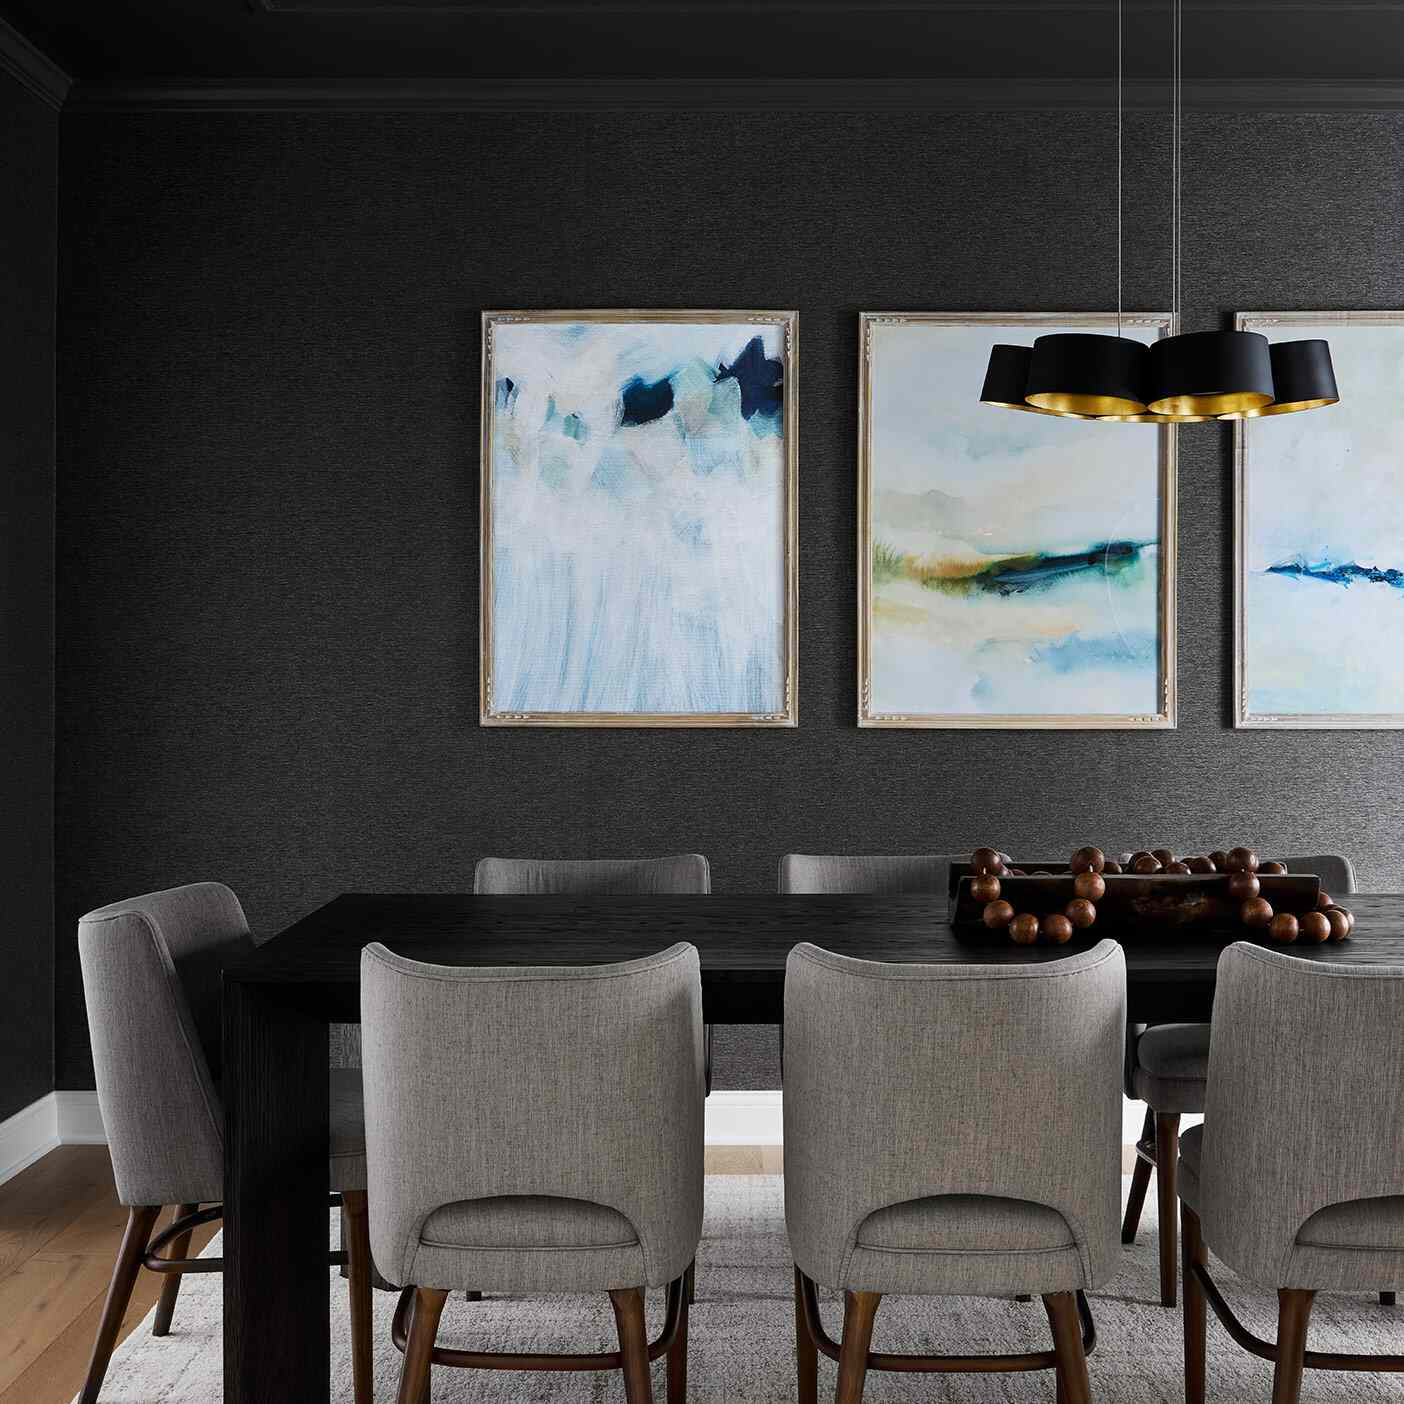 A dining room with black walls, black and gray furniture, and pastel blue art